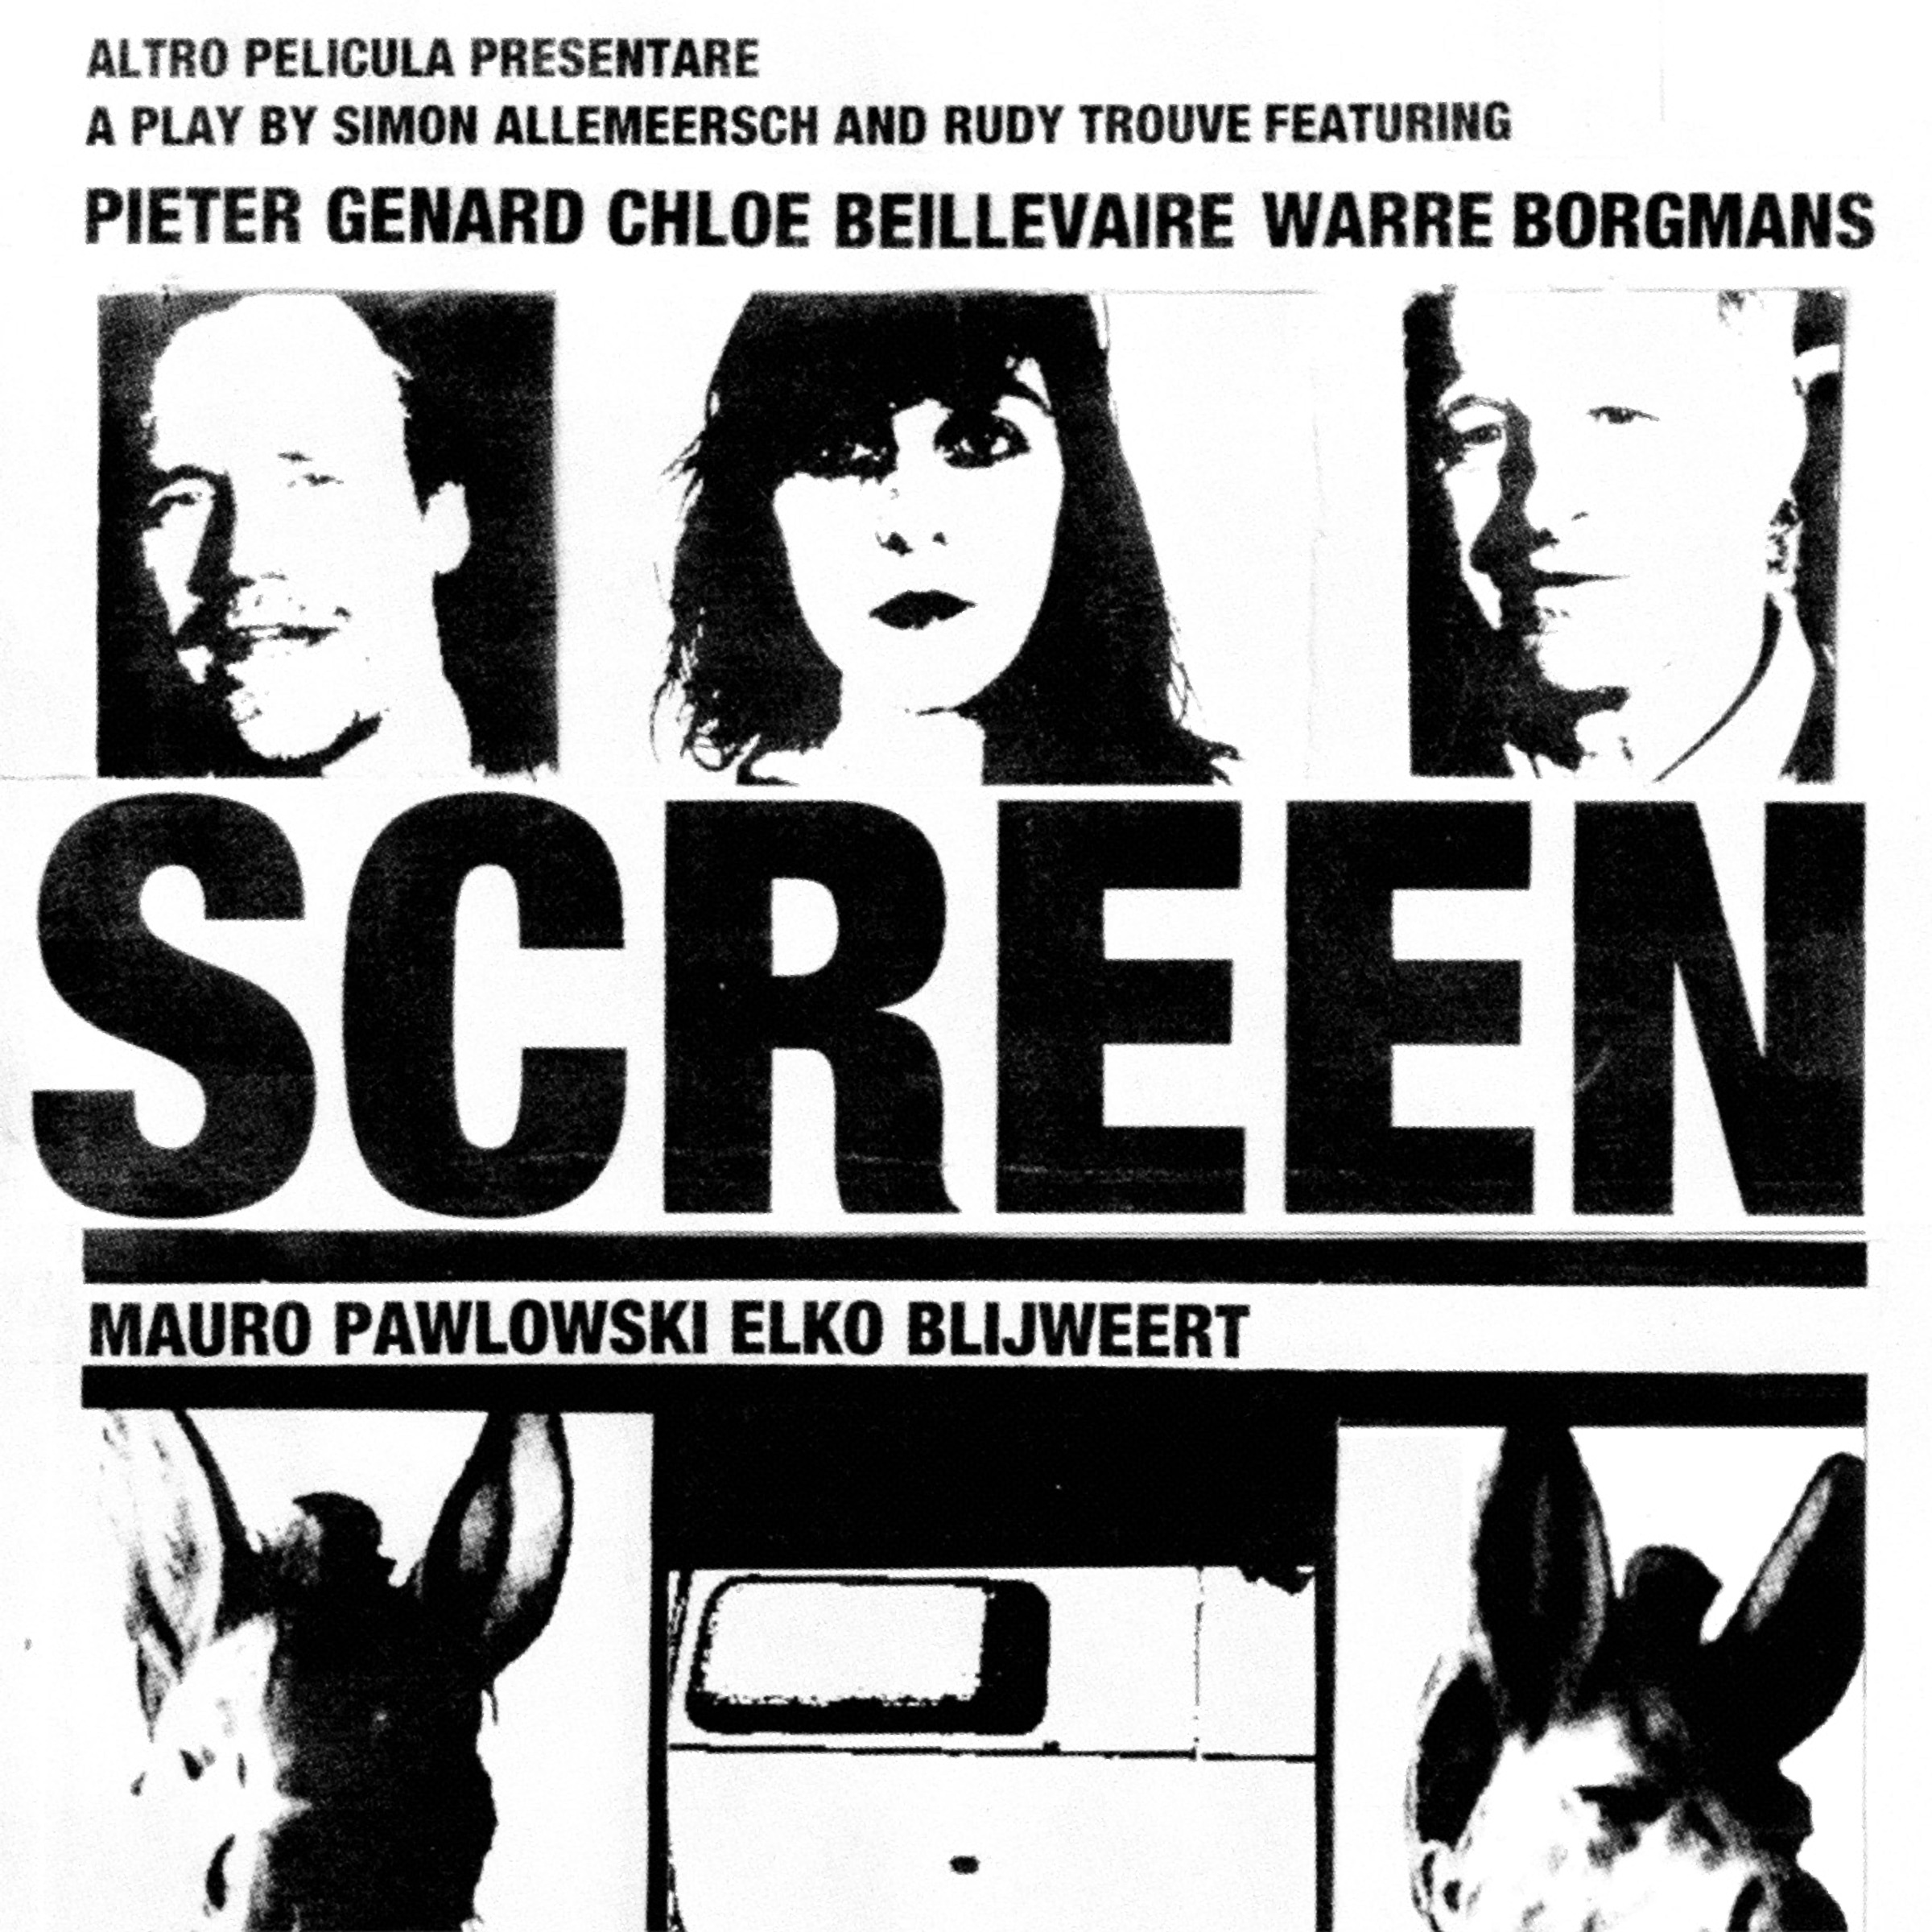 SCREEN​/​Crossroads Soundtrack by Rudy Trouve, Elko Blijweert, Mauro Pawlowski and Gunter Nagels